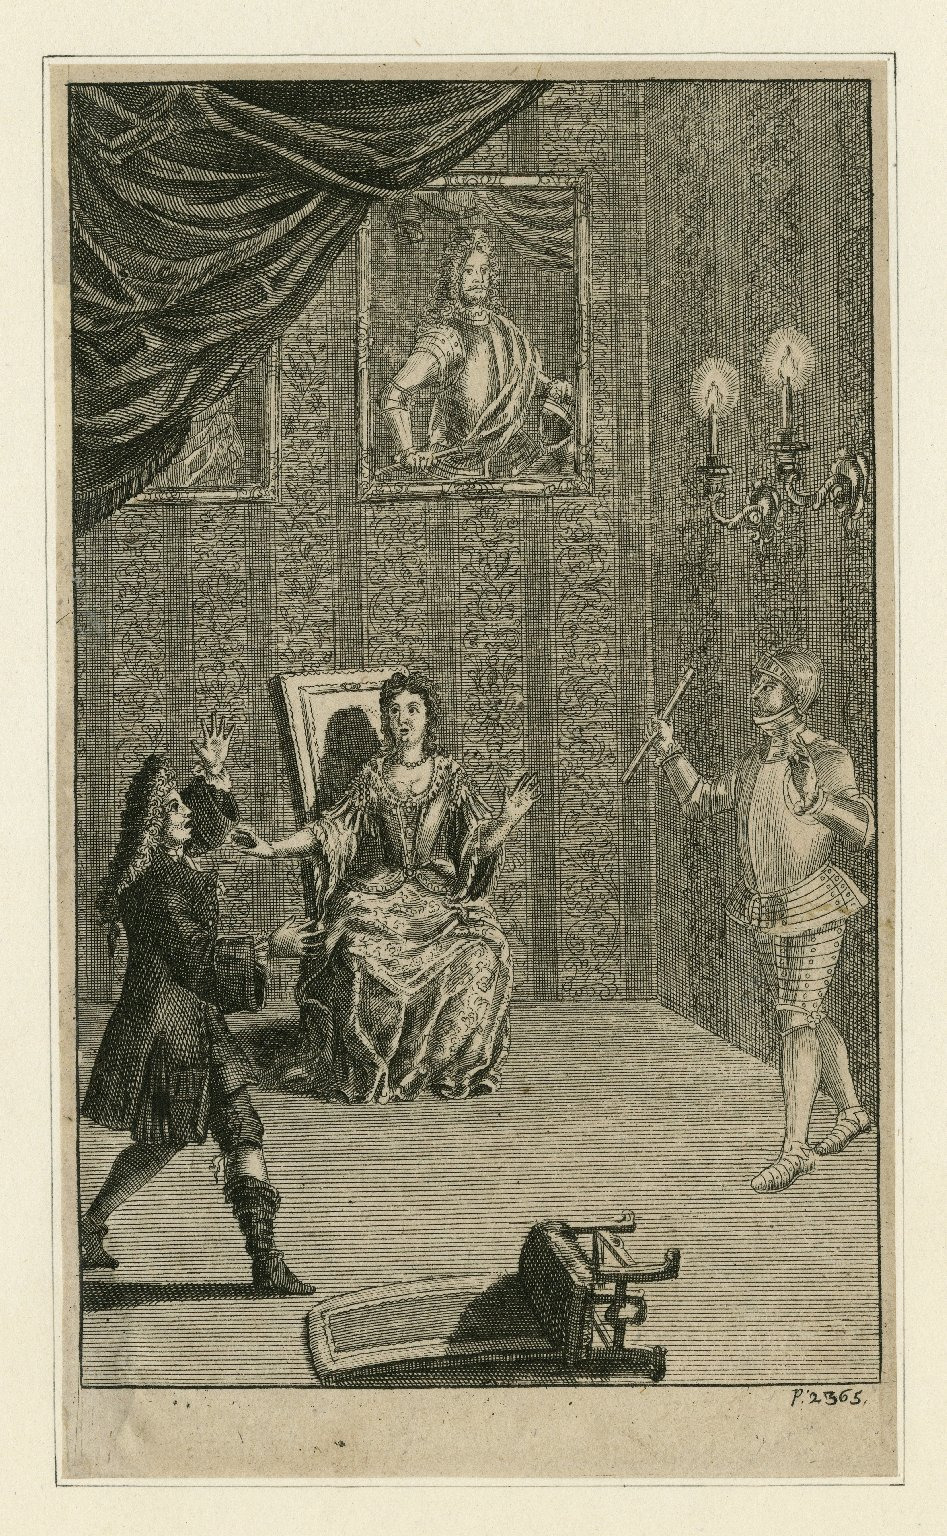 Illustration in the 1709 Nicholas Rowe edition of Shakespeare's Works